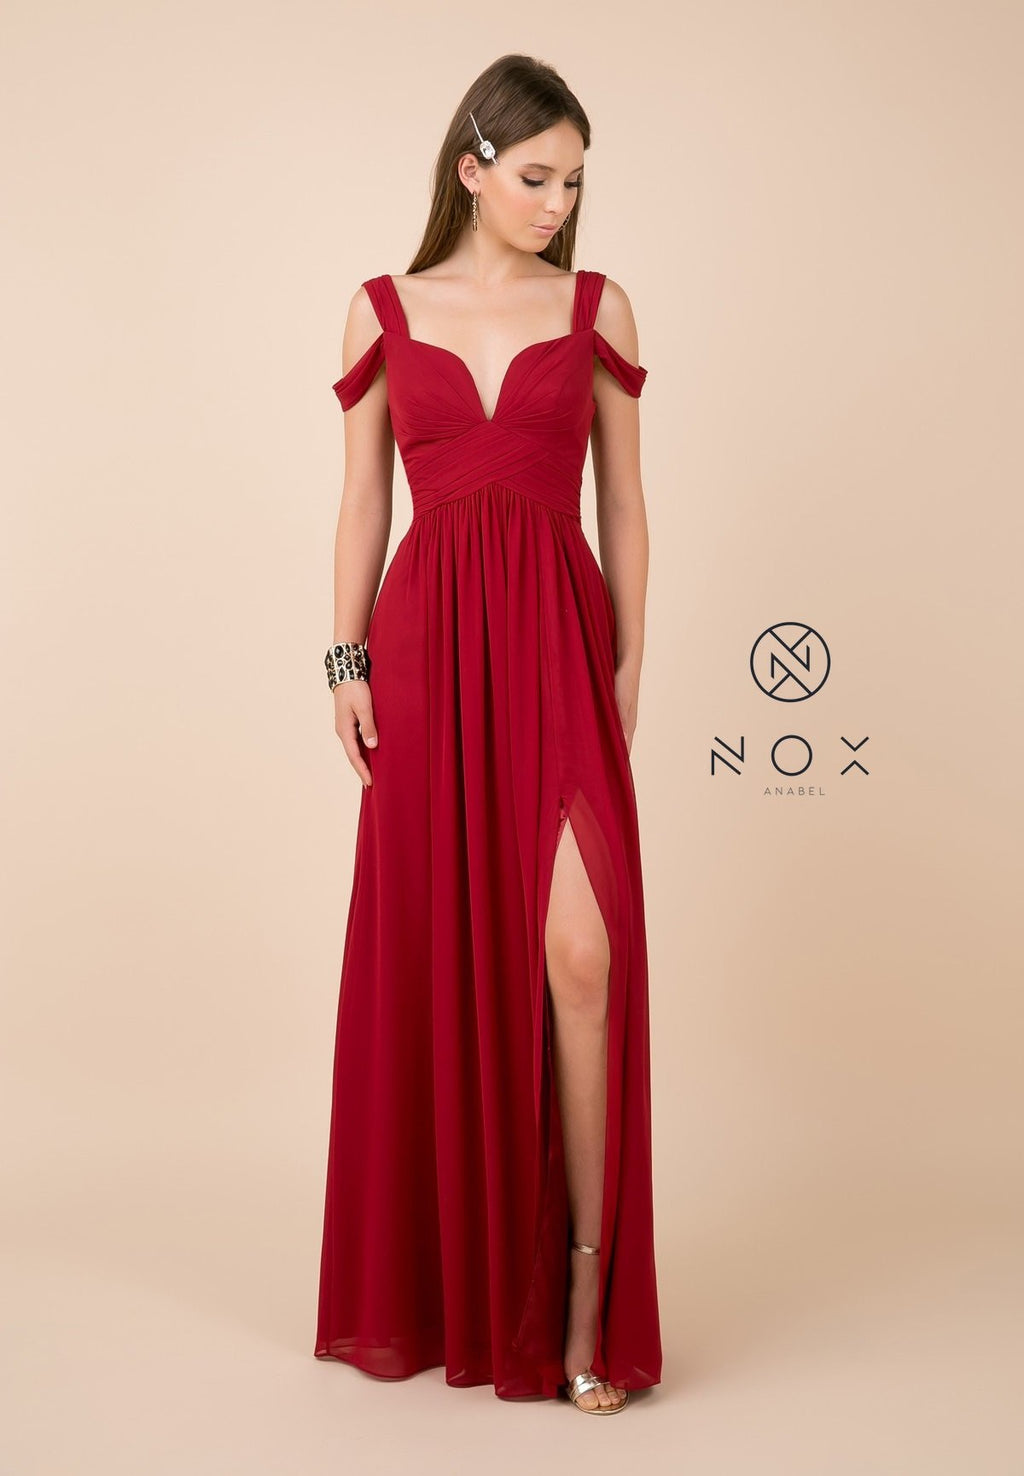 Nox Anabel Y277 Cold Shoulder A-Line Evening Dress